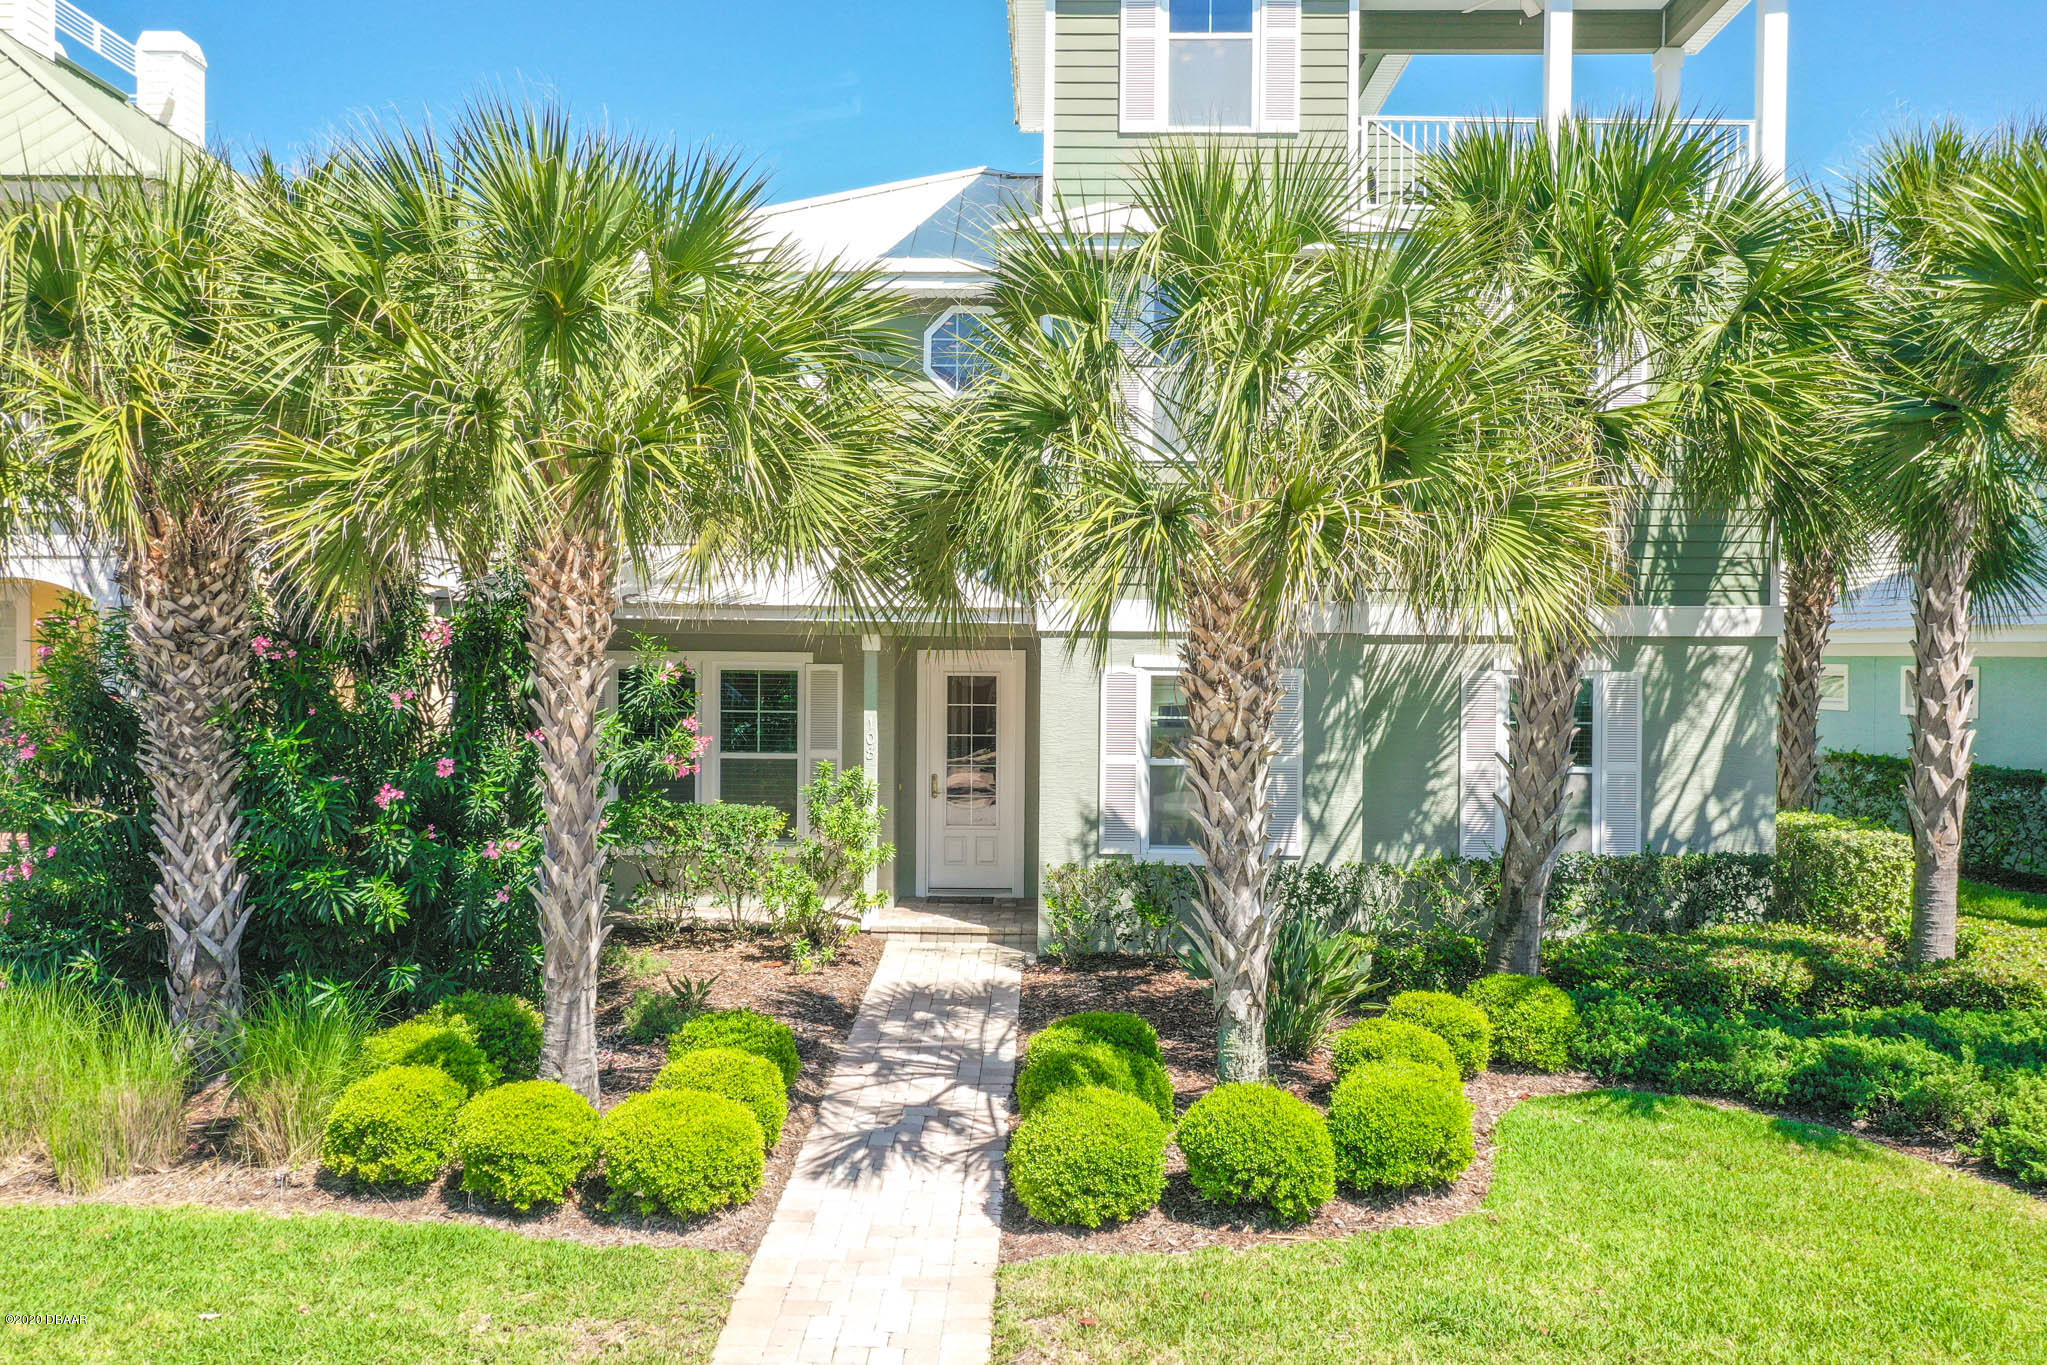 108 N Ocean Way, Palm Coast, Florida